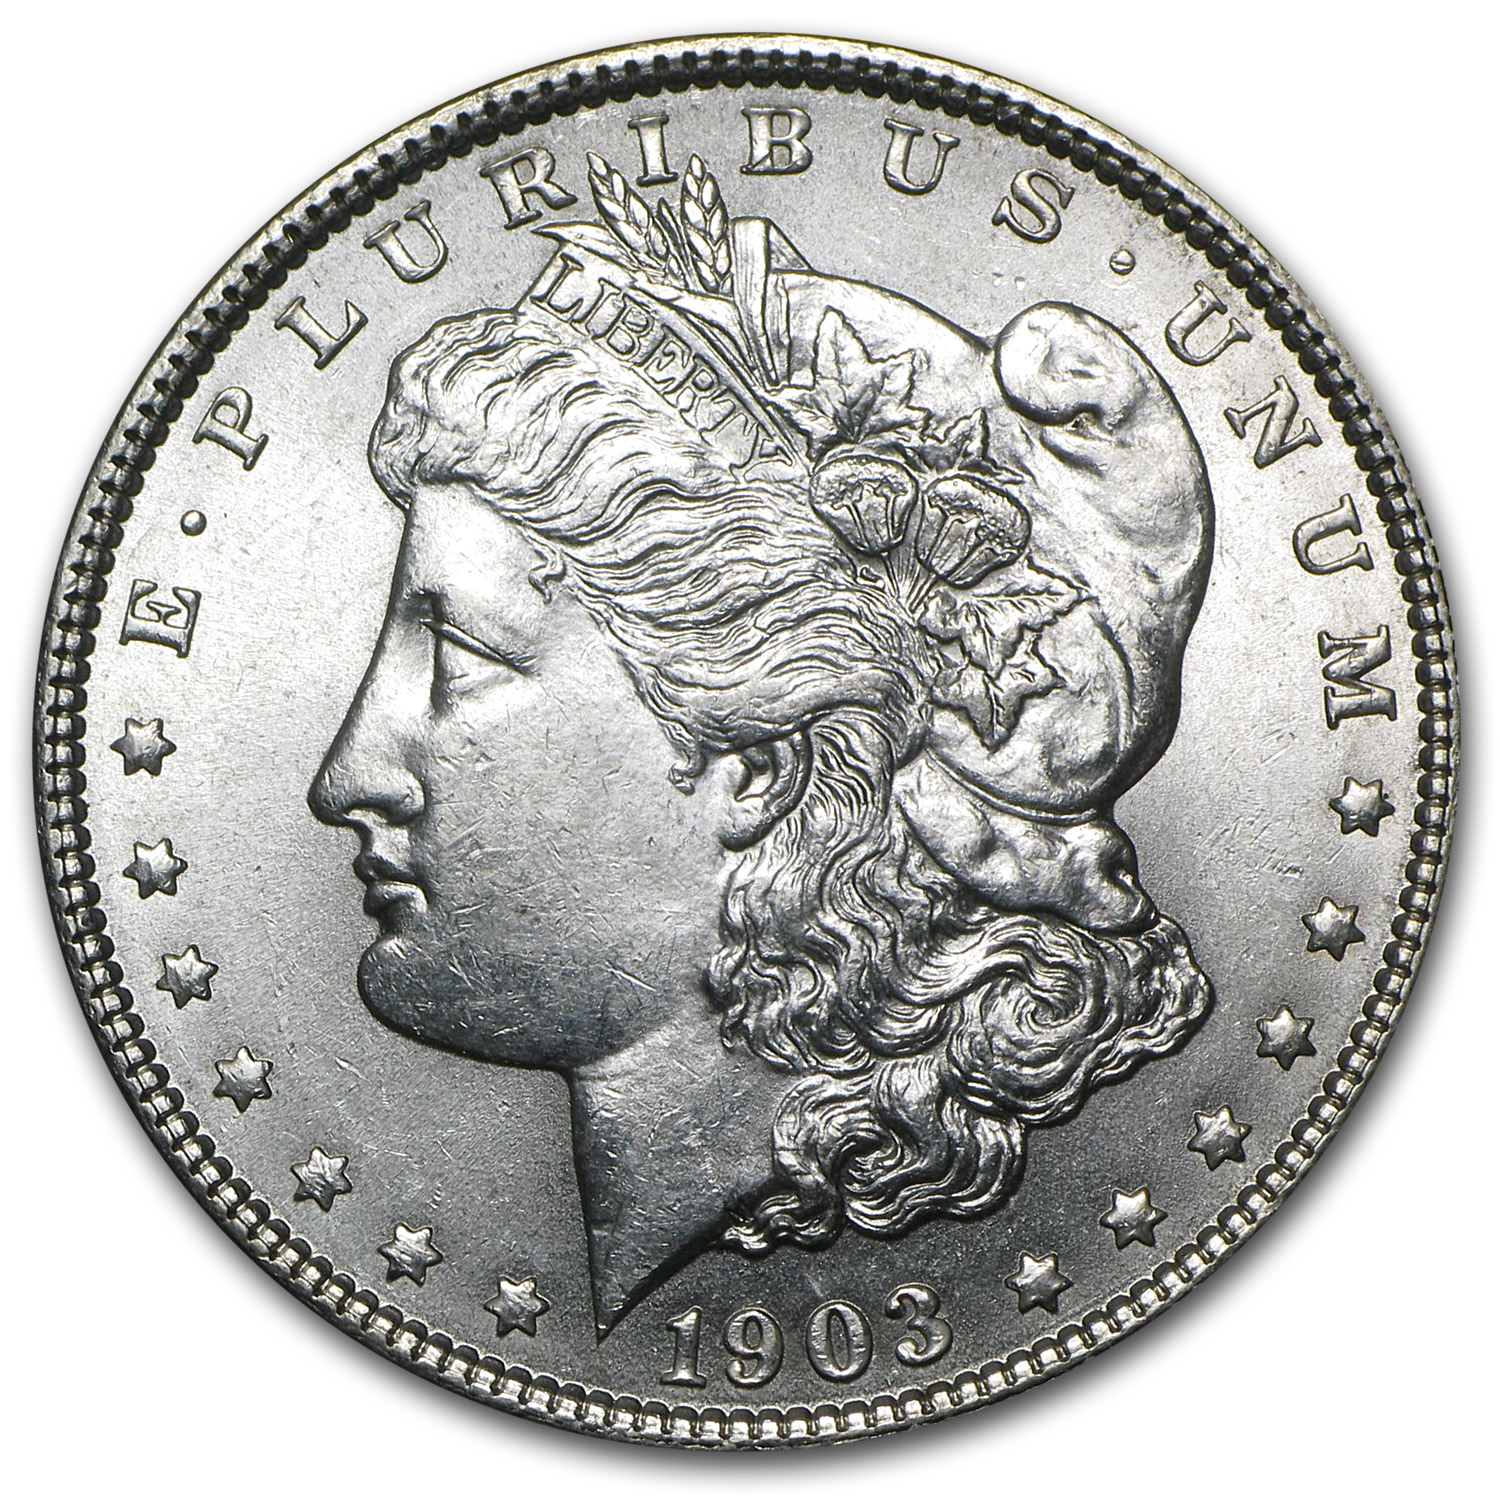 1903 Morgan Dollar - Brilliant Uncirculated